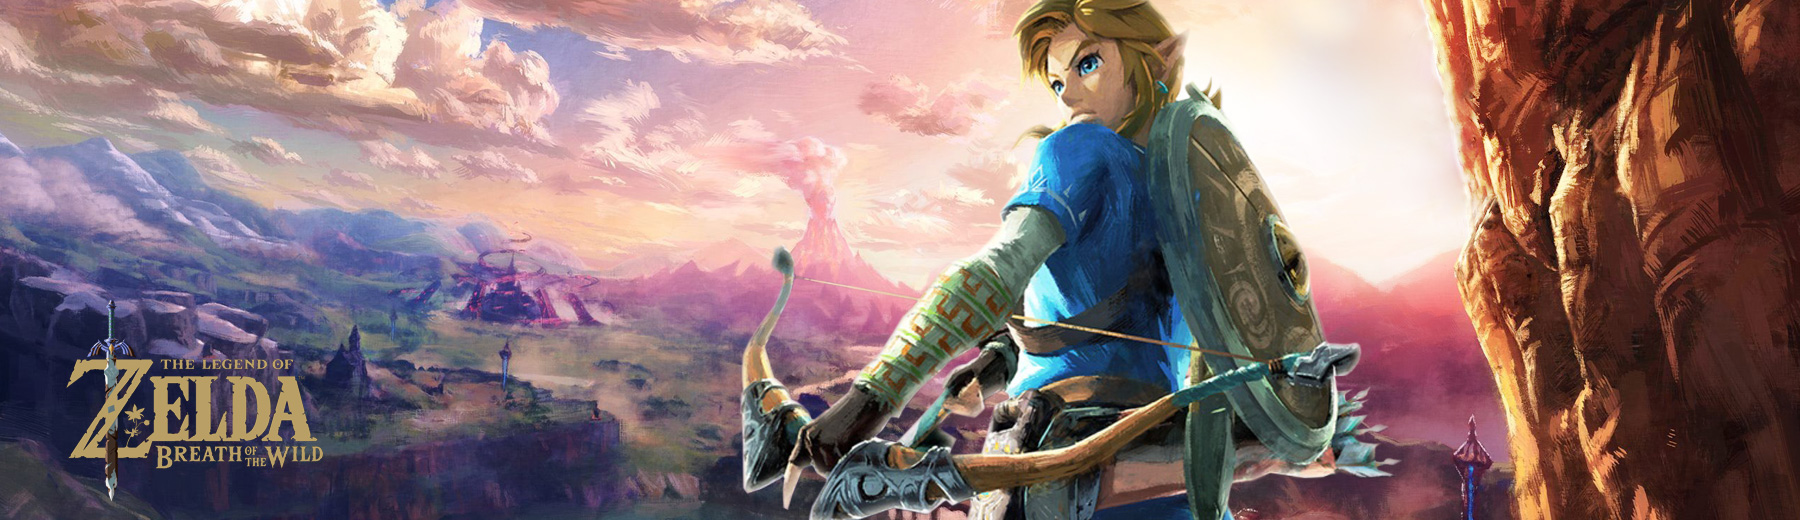 Legend Of Zelda Breath Of The Wild Königliche Küche Zelda | Fanartikel Zum Gaming-klassiker | Elbenwald